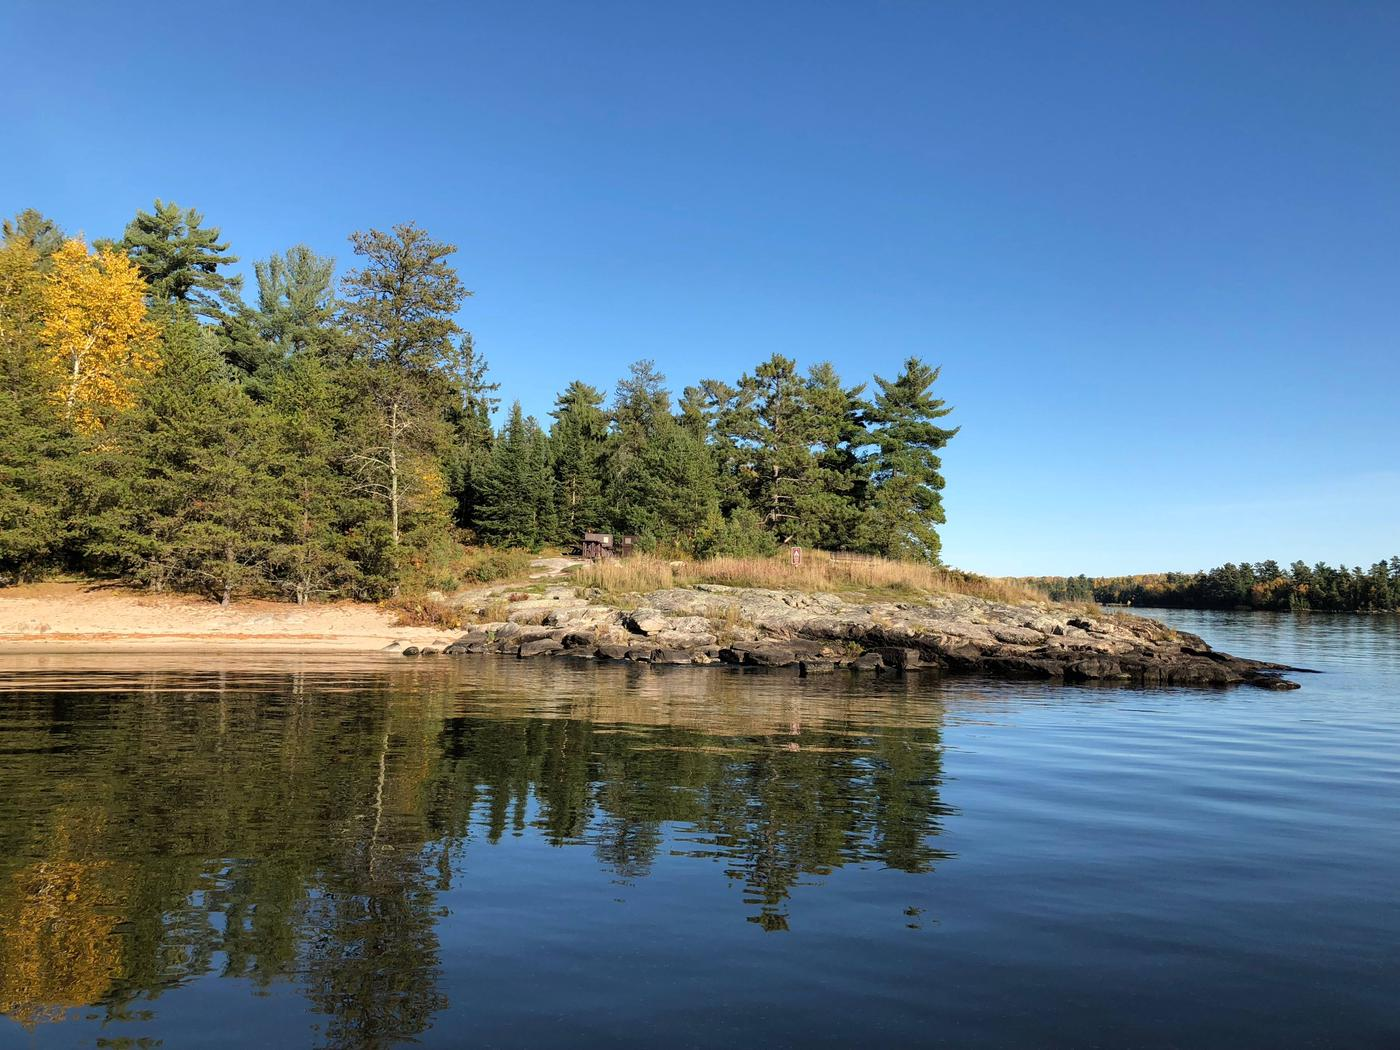 Voyageurs National Park Camping PermitsCampsite with a sand beach on Kabetogama Lake